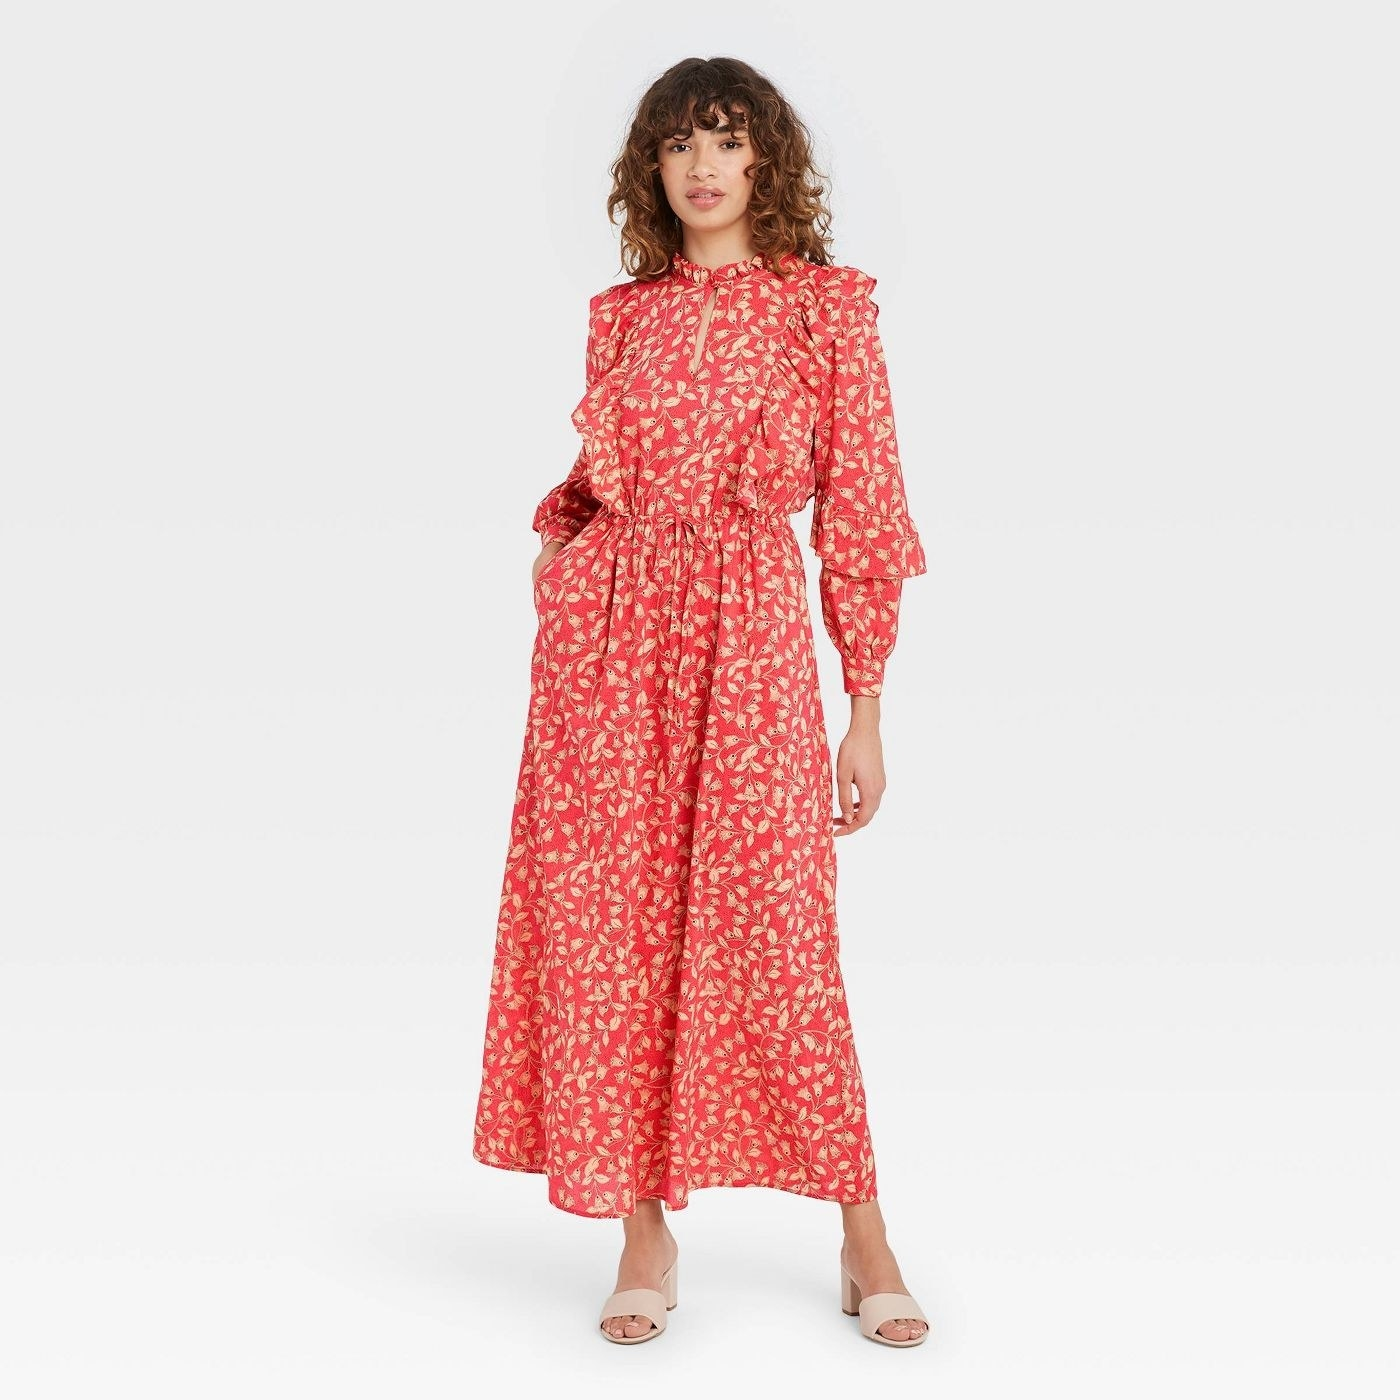 Model wearing red dress with beige floral print